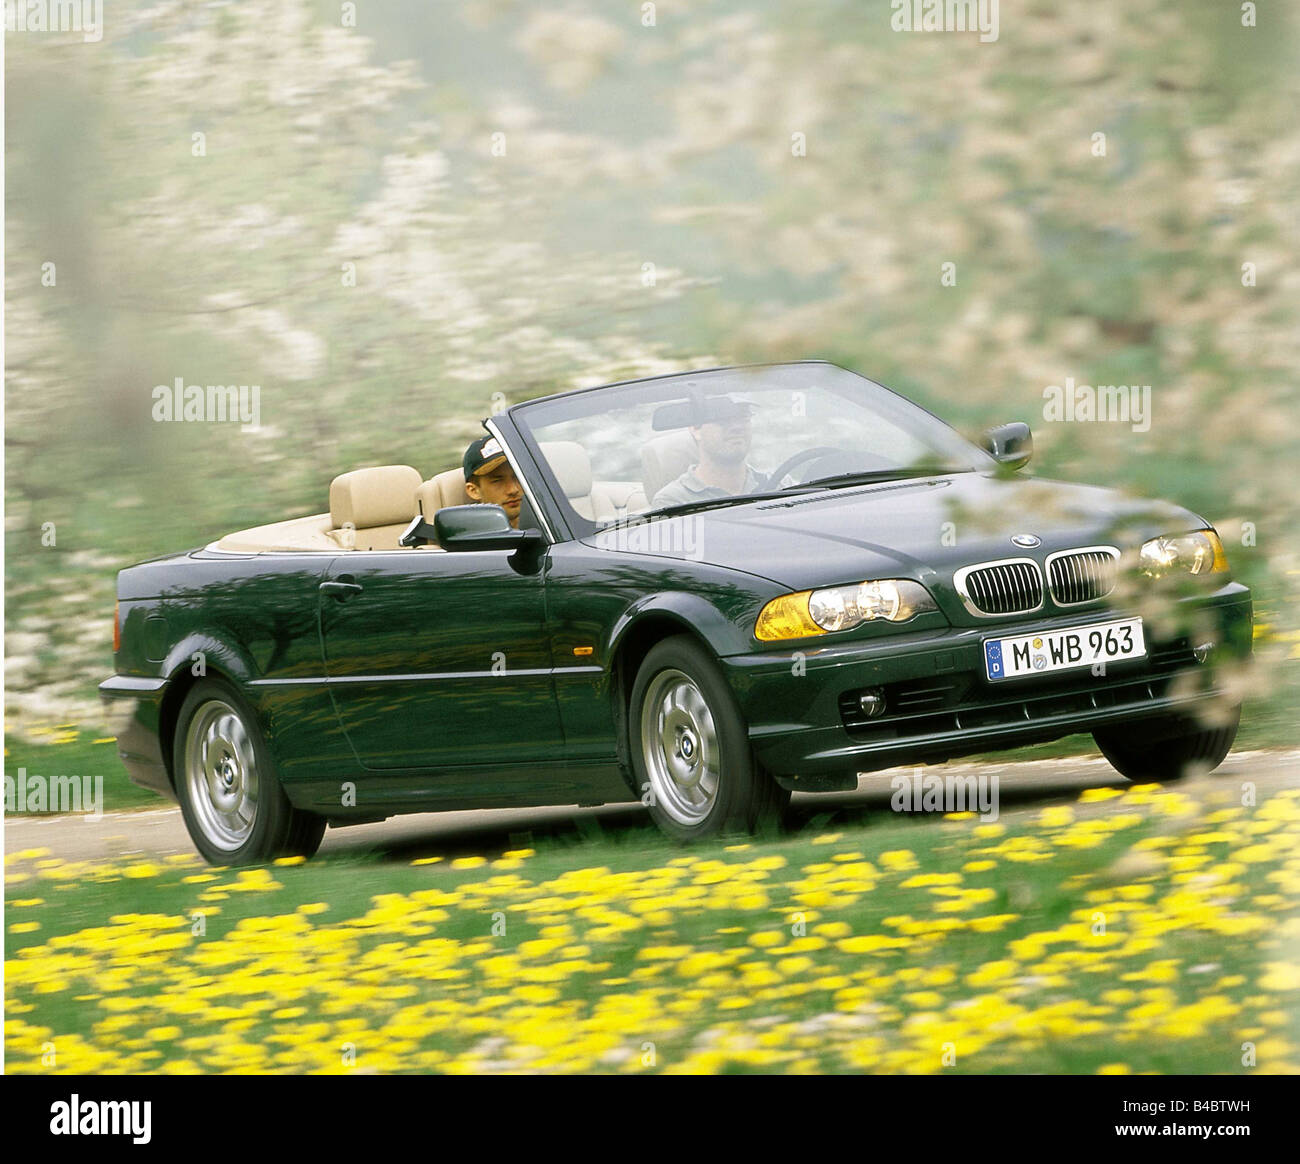 2000 Bmw 323 Coupe: Me 323 Stock Photos & Me 323 Stock Images